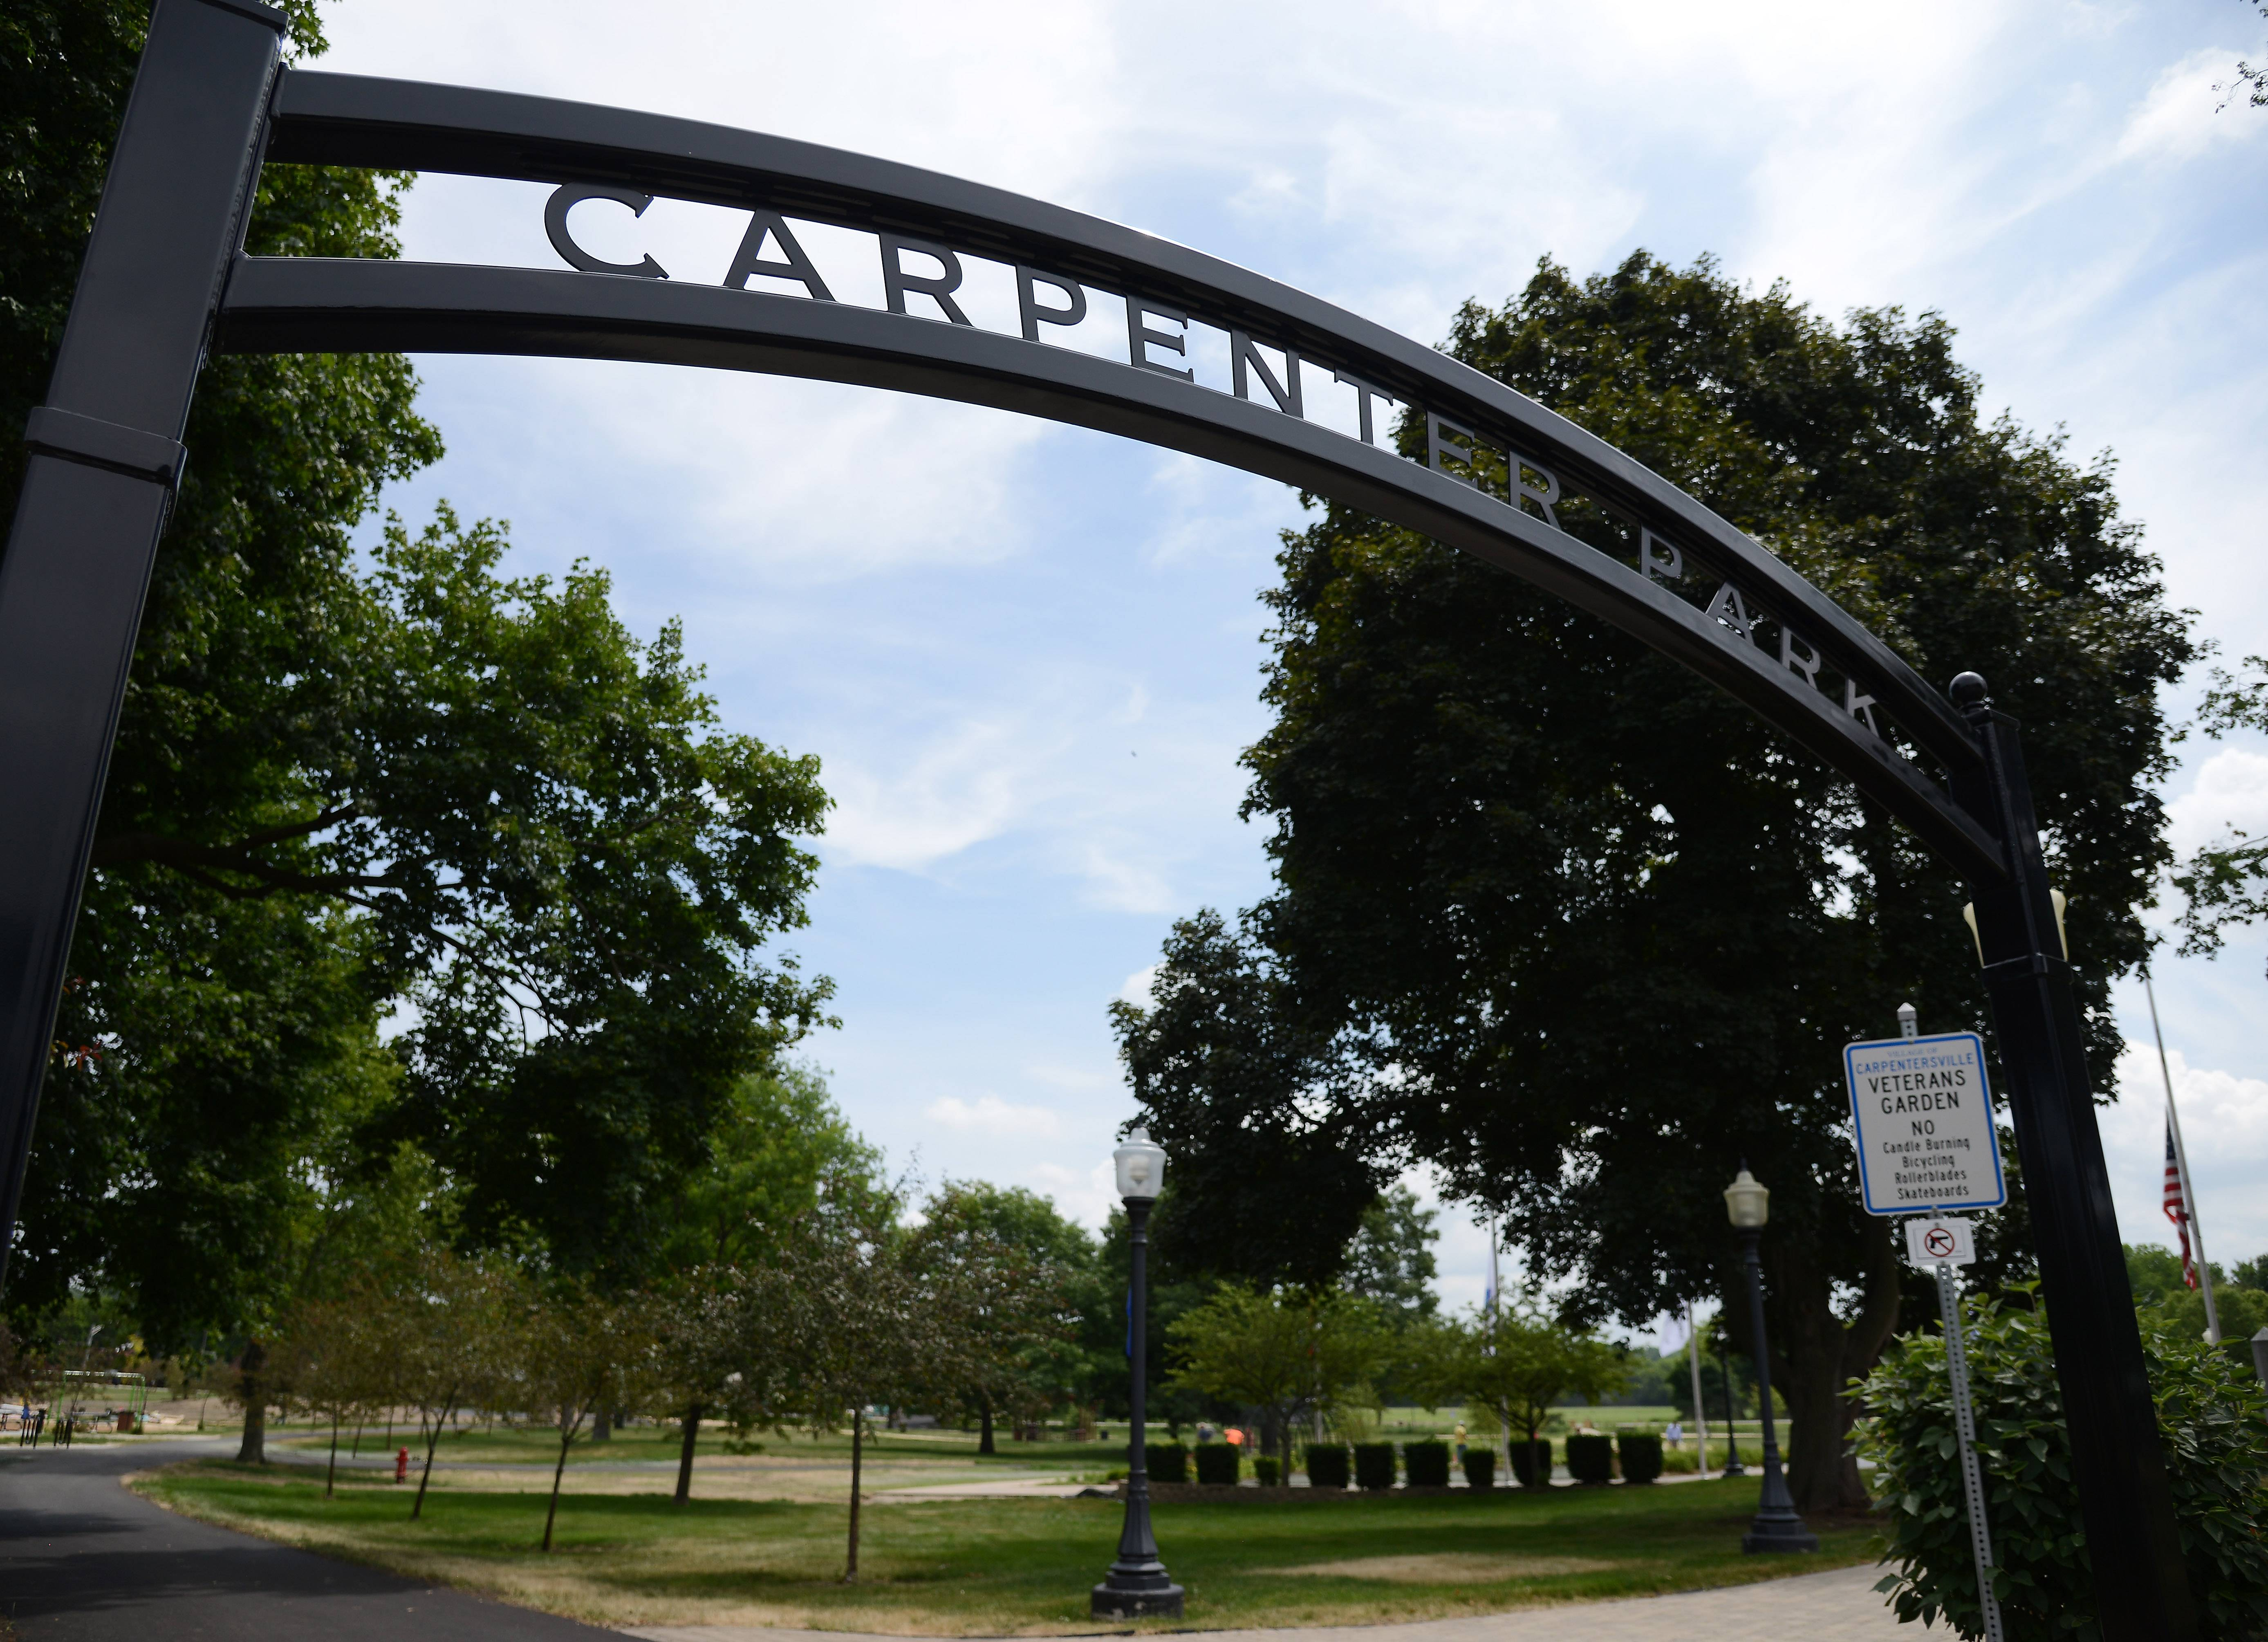 The fourth annual Fest on the Fox, hosted by the Northern Kane County Chamber of Commerce, will be held Saturday at the recently renovated Carpenter Park.